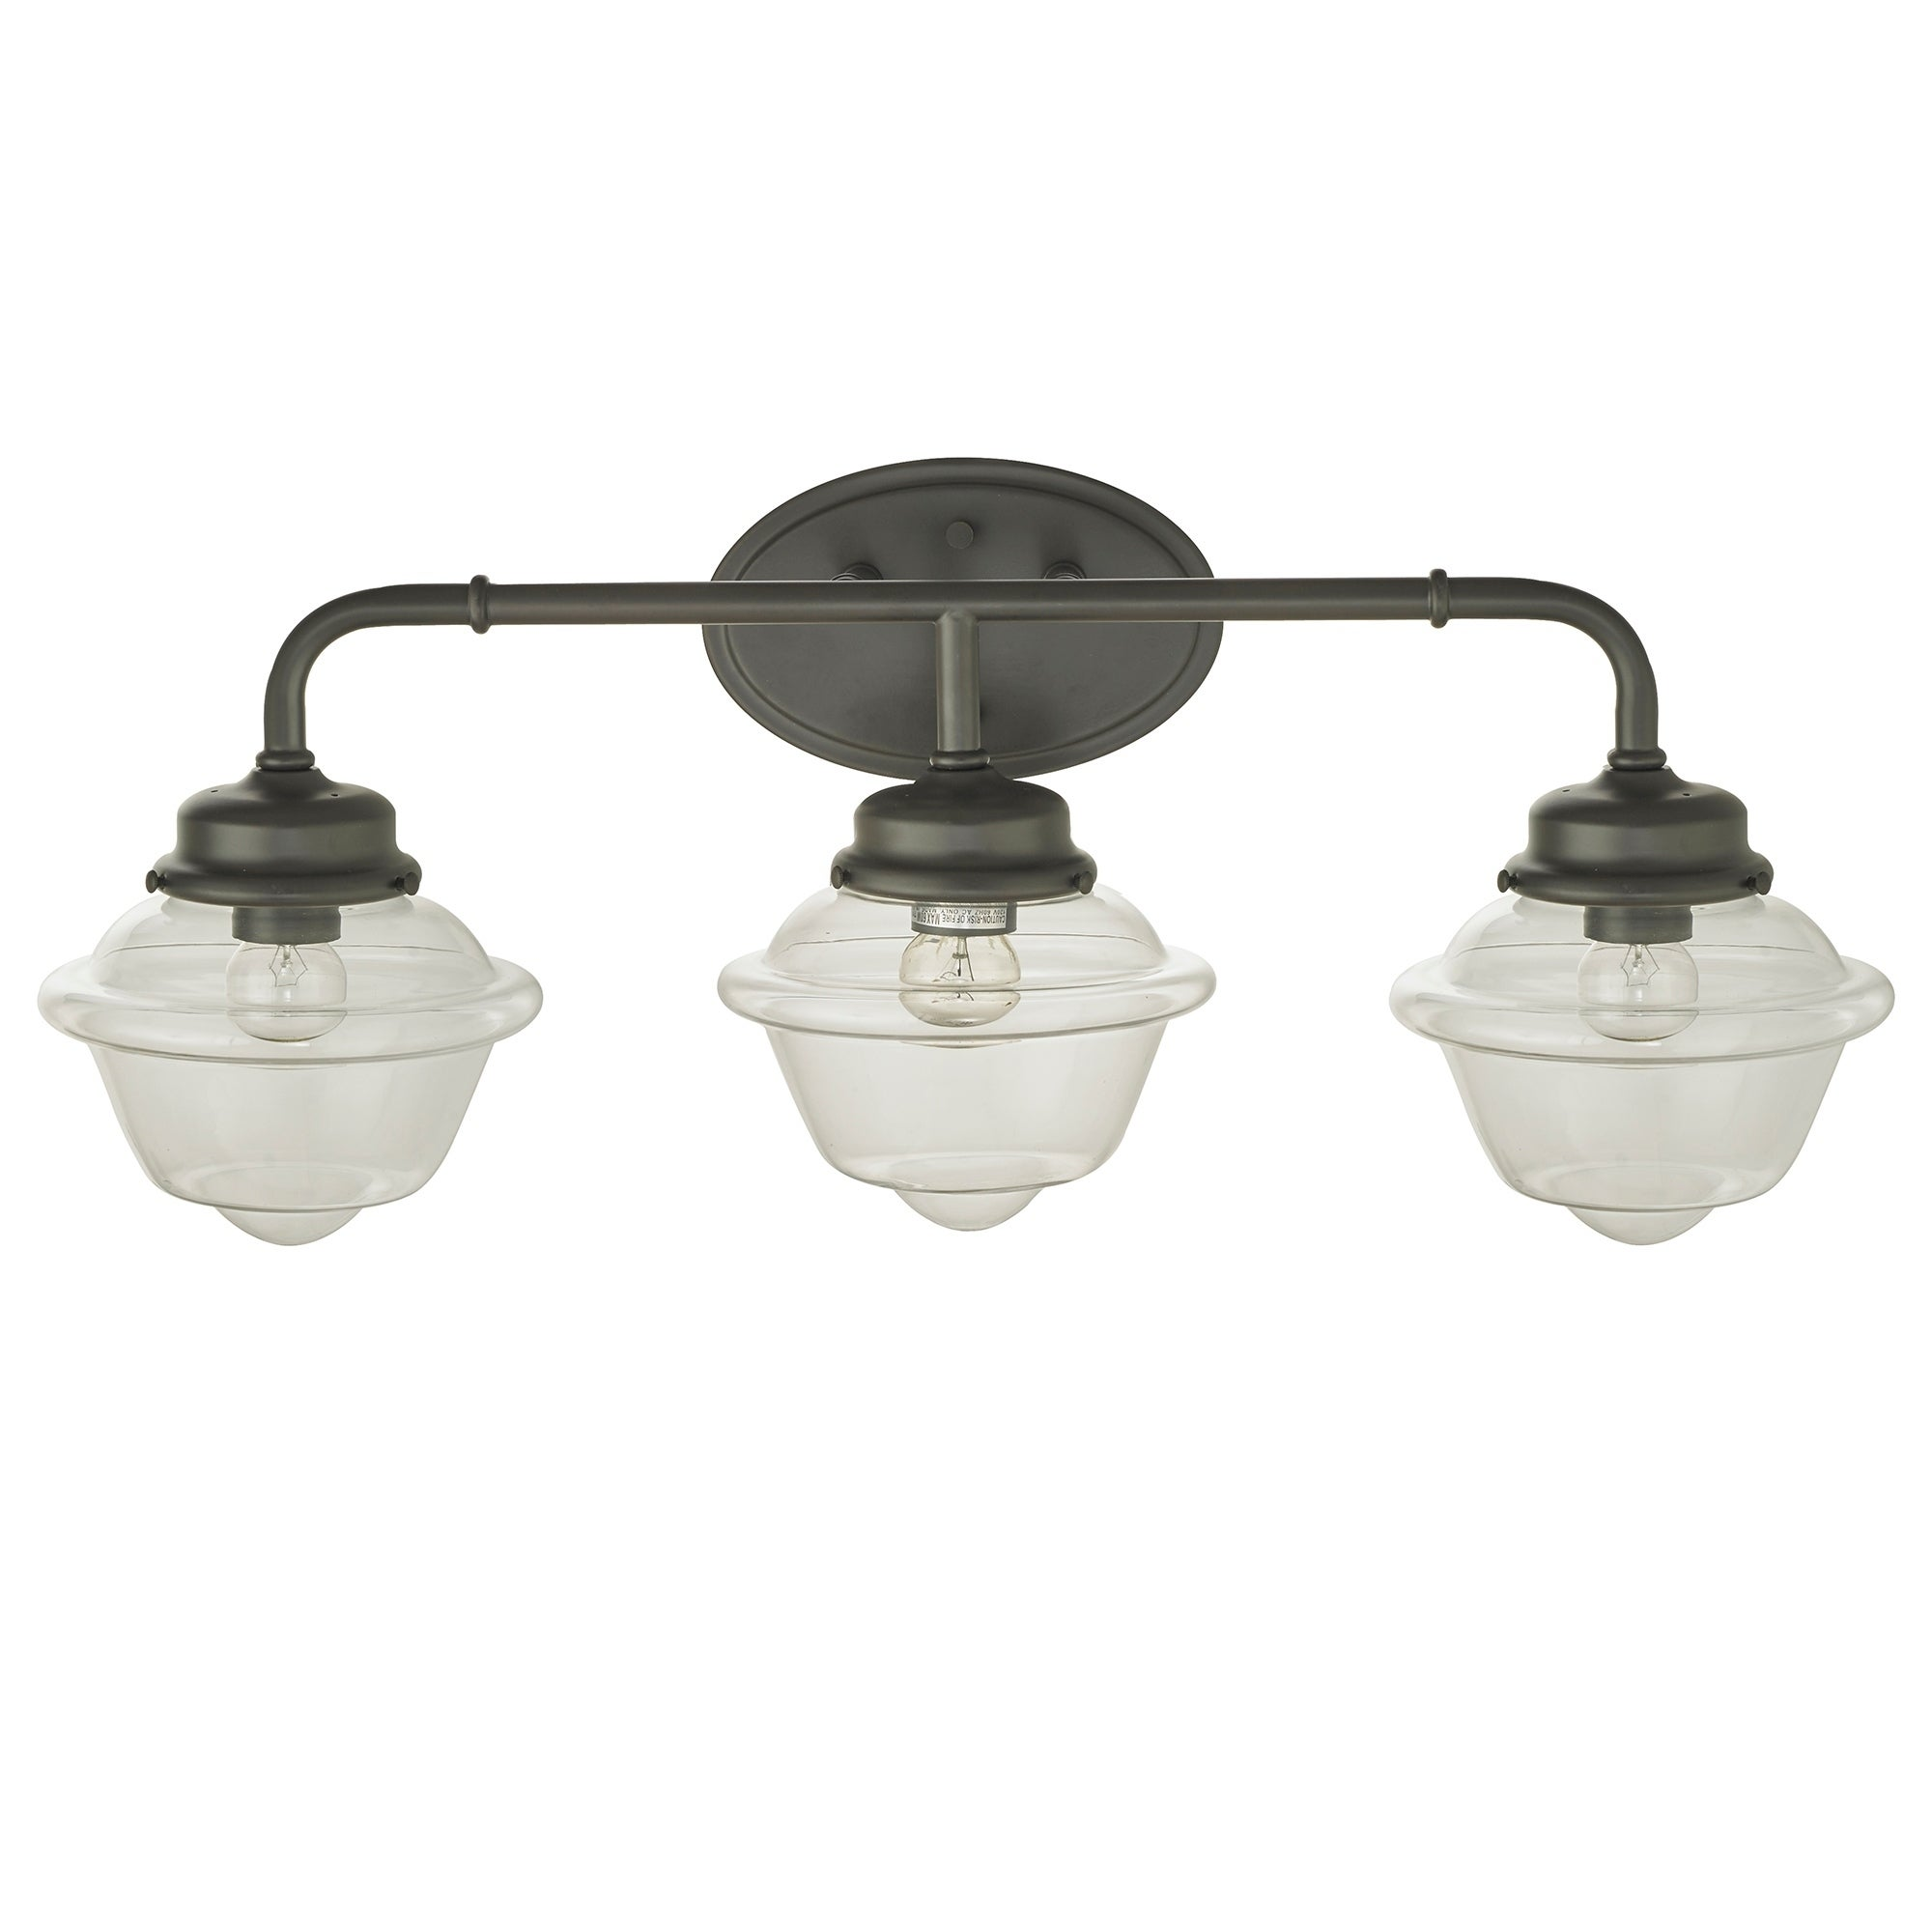 Shop Sylvester Oil Rubbed Bronze Light Wall Sconce With Glass - 3 light bathroom sconce